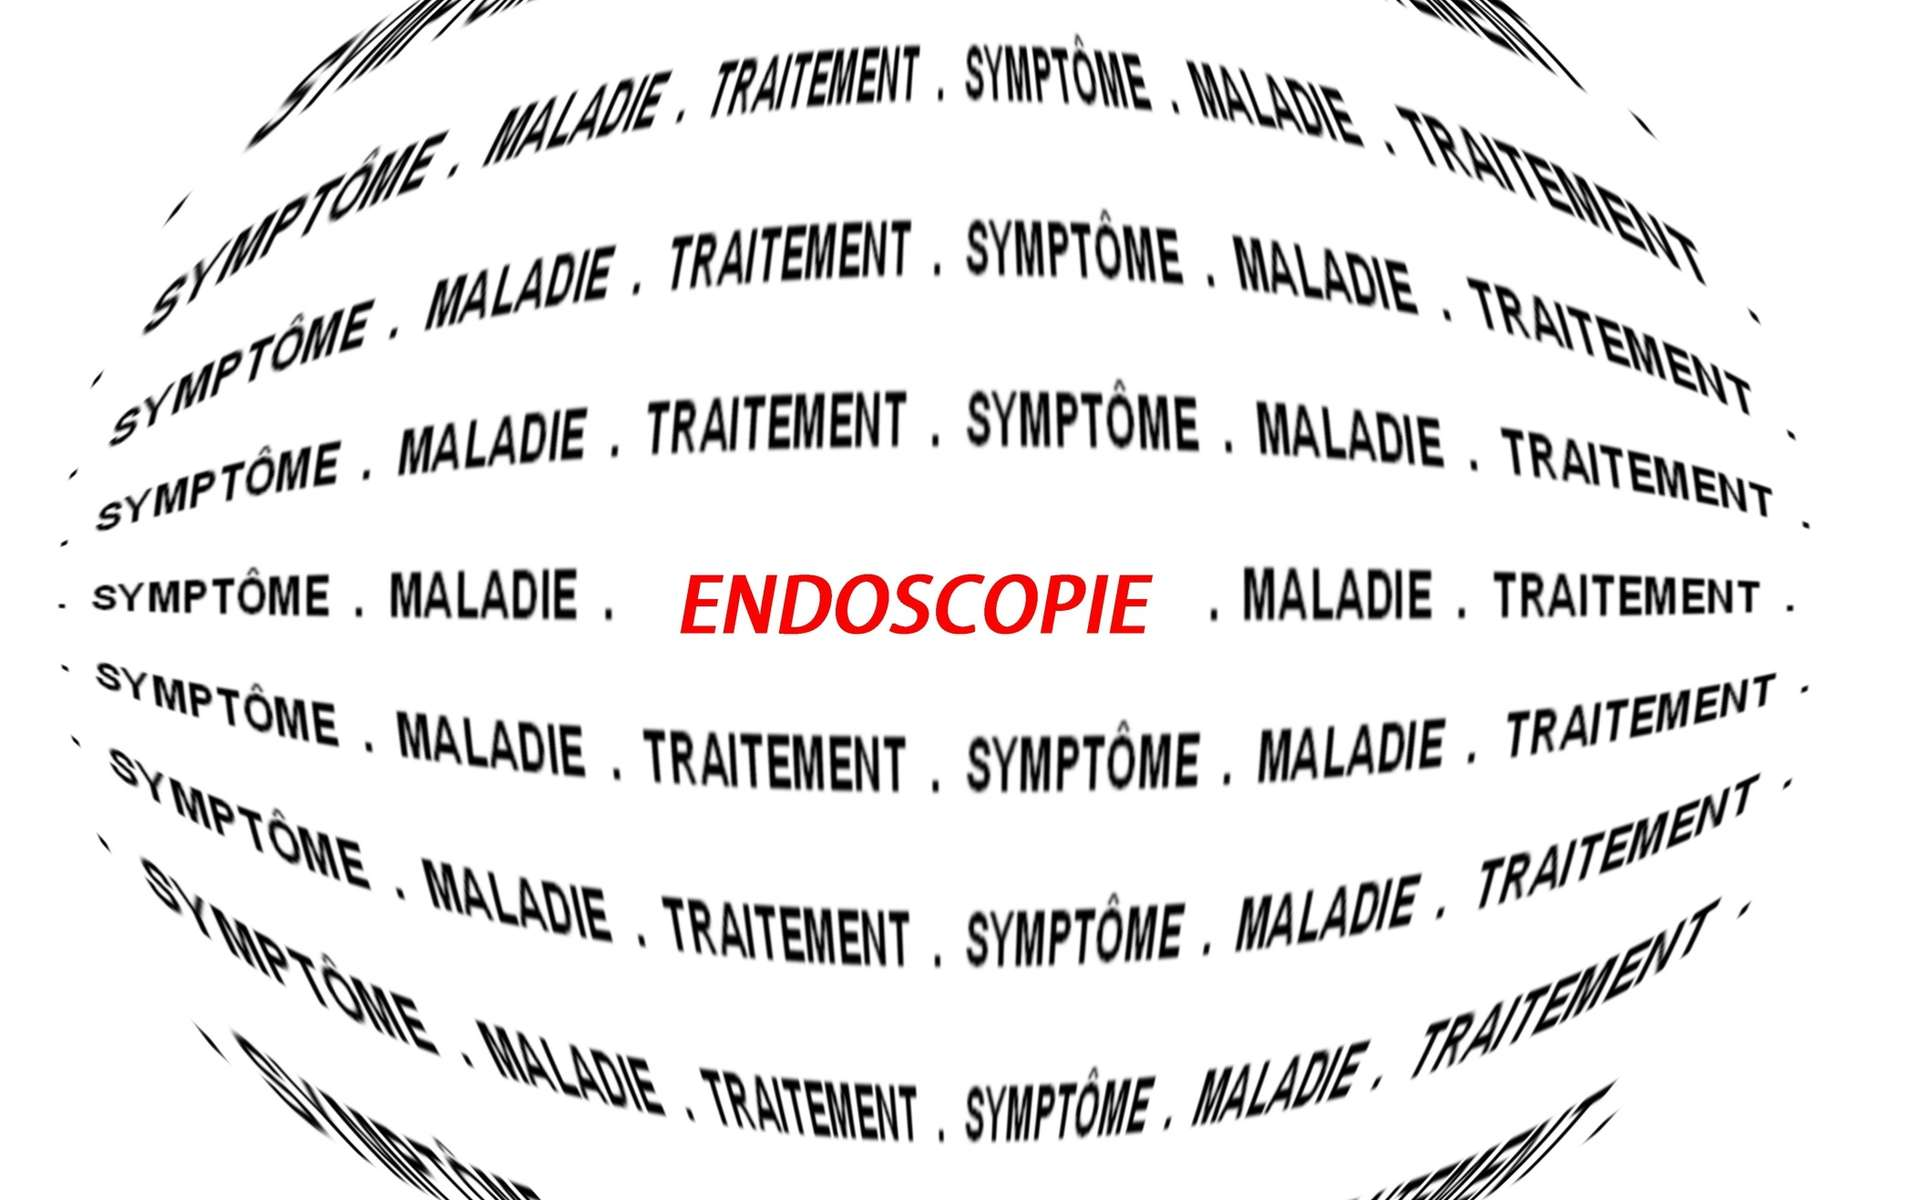 Cancer de l'œsophage : une endoscopie pour poser le diagnostic. © zuchero - Fotolia